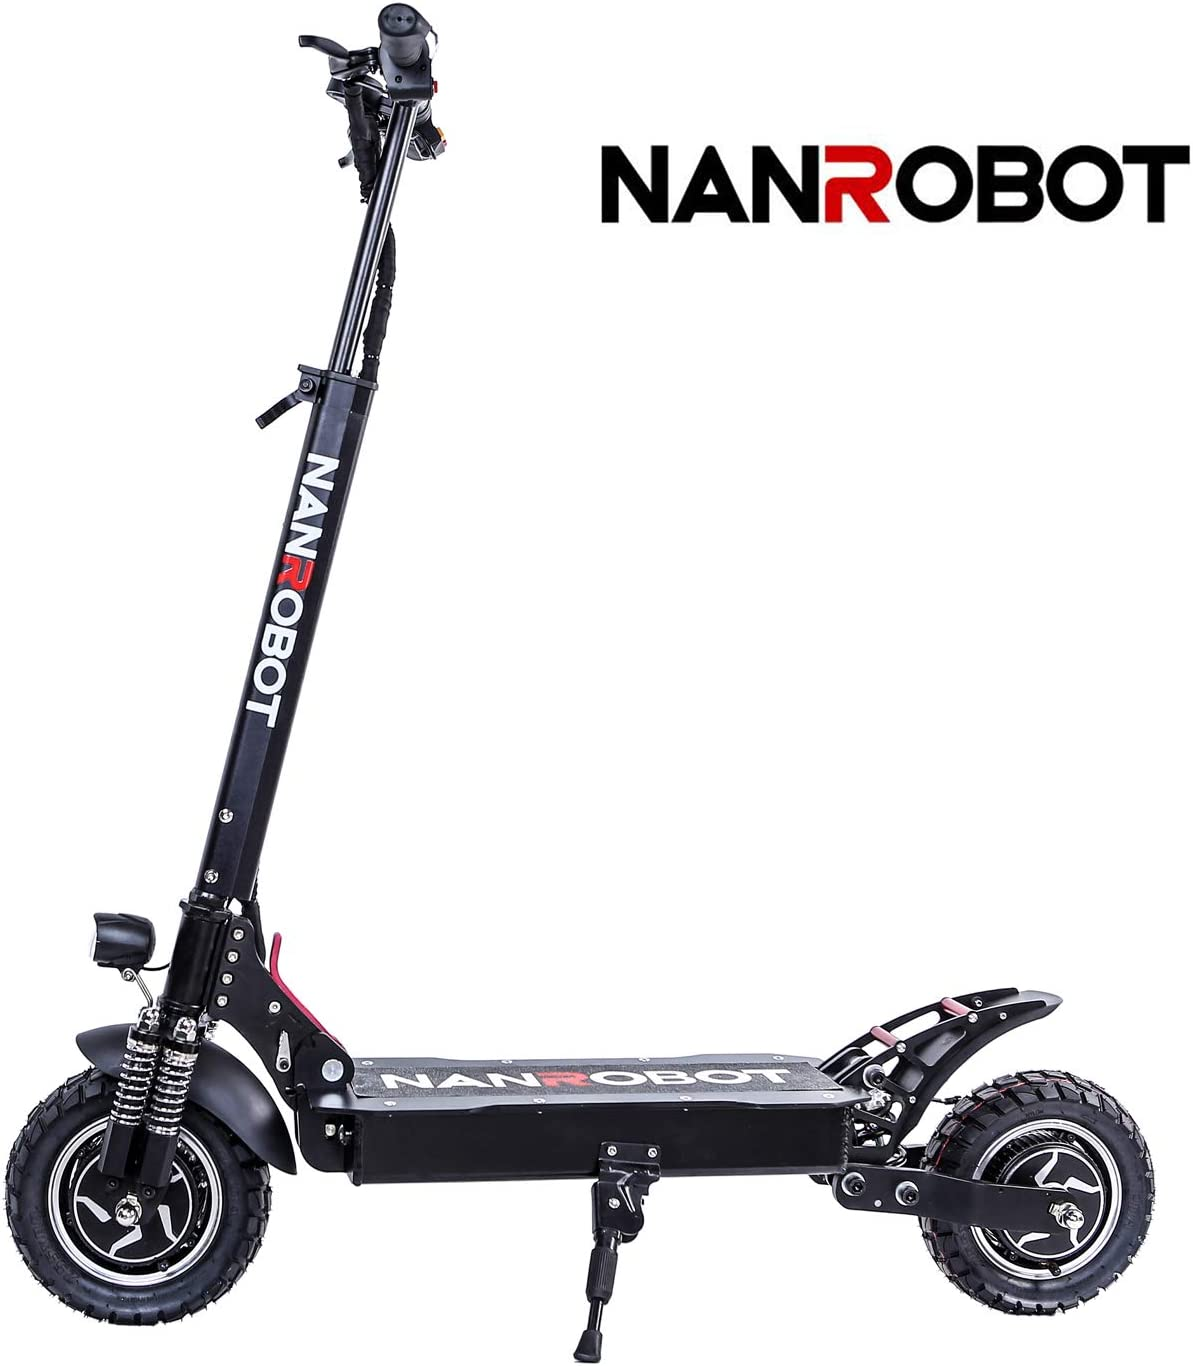 Fastest Affordable Electric Scooters In '2021' 4